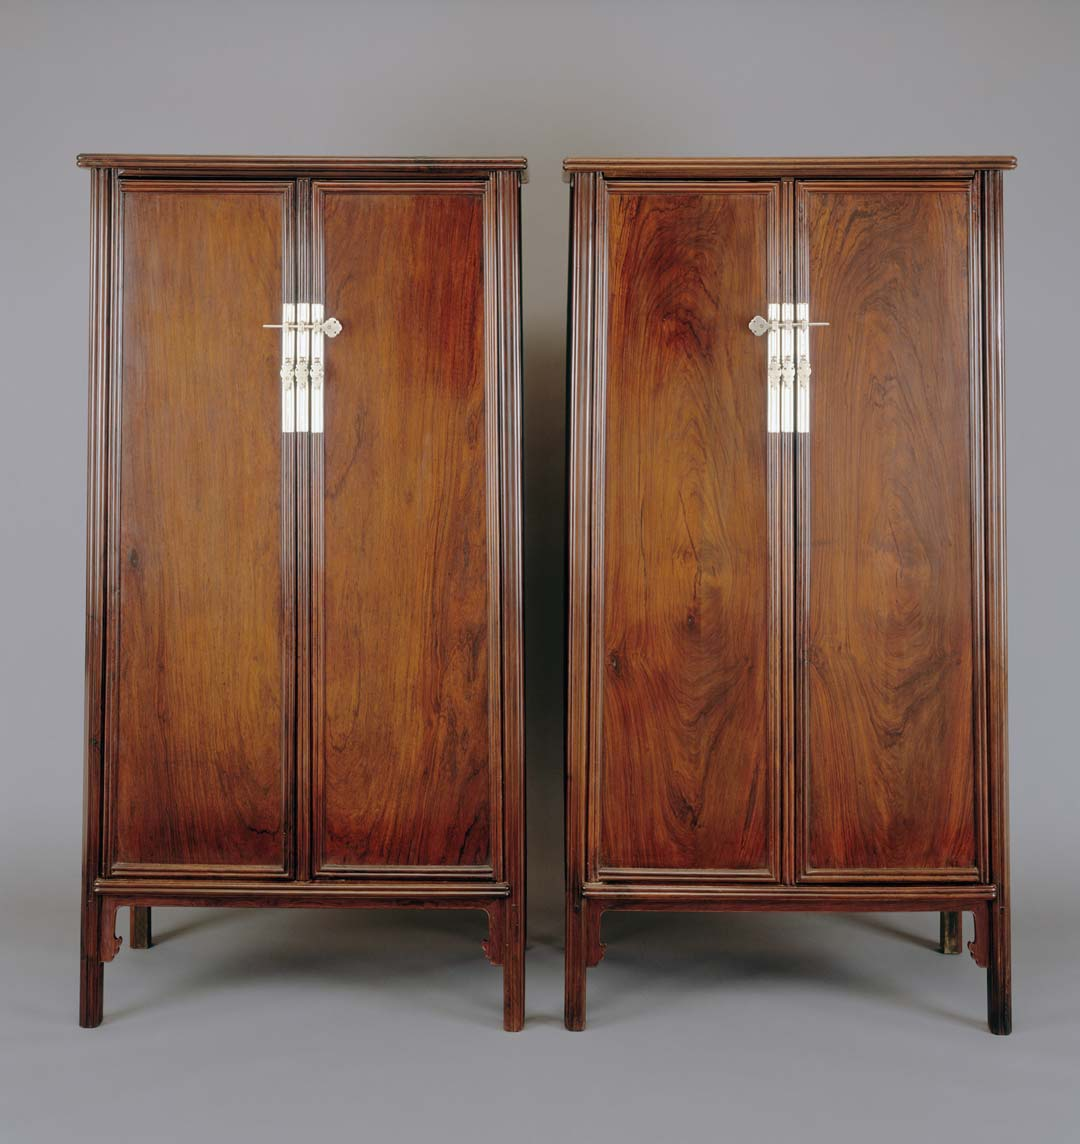 Object of the Week: Round-corner wood-hinged cabinet